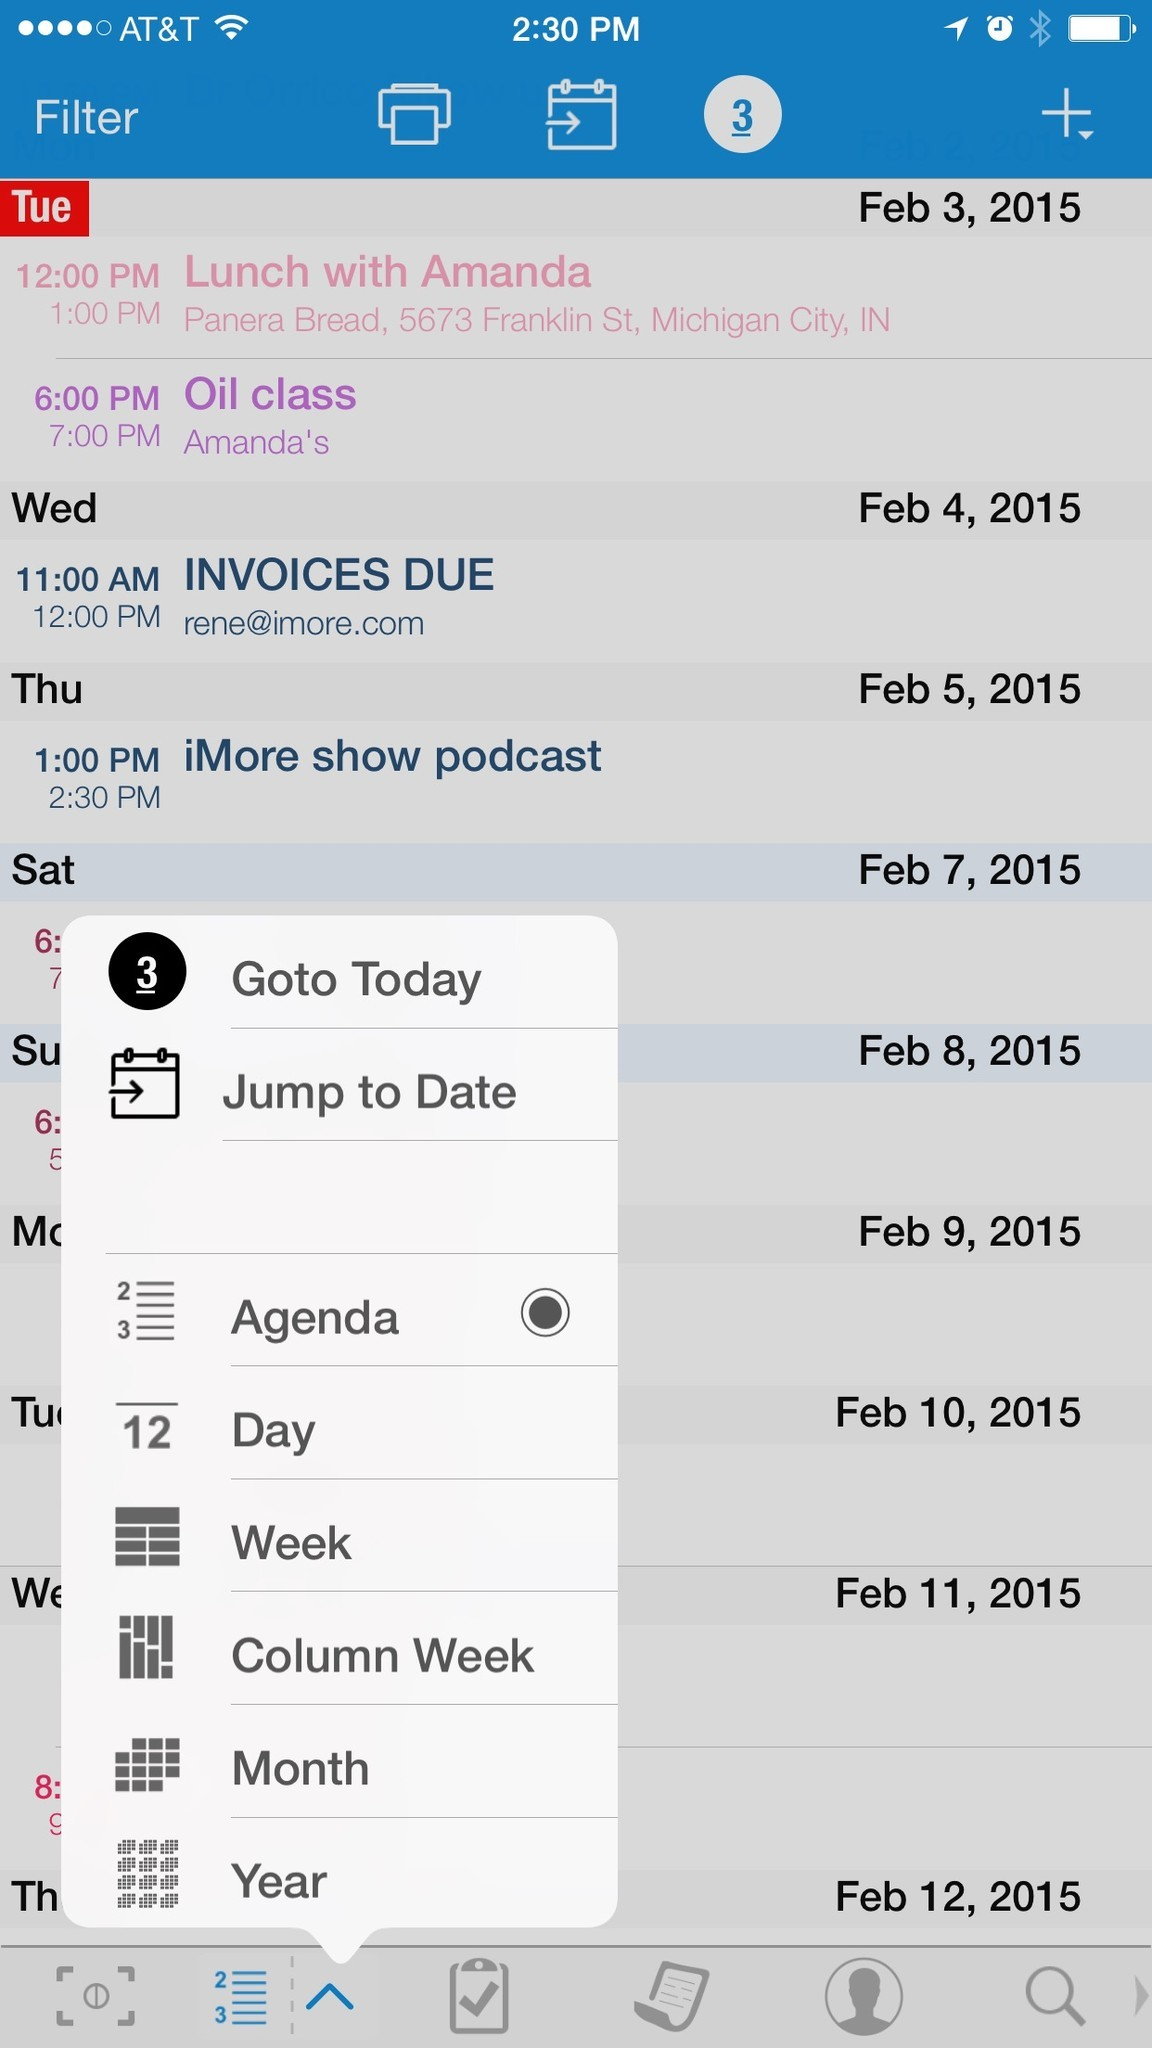 Best calendar apps for iPhone: Pocket Informant